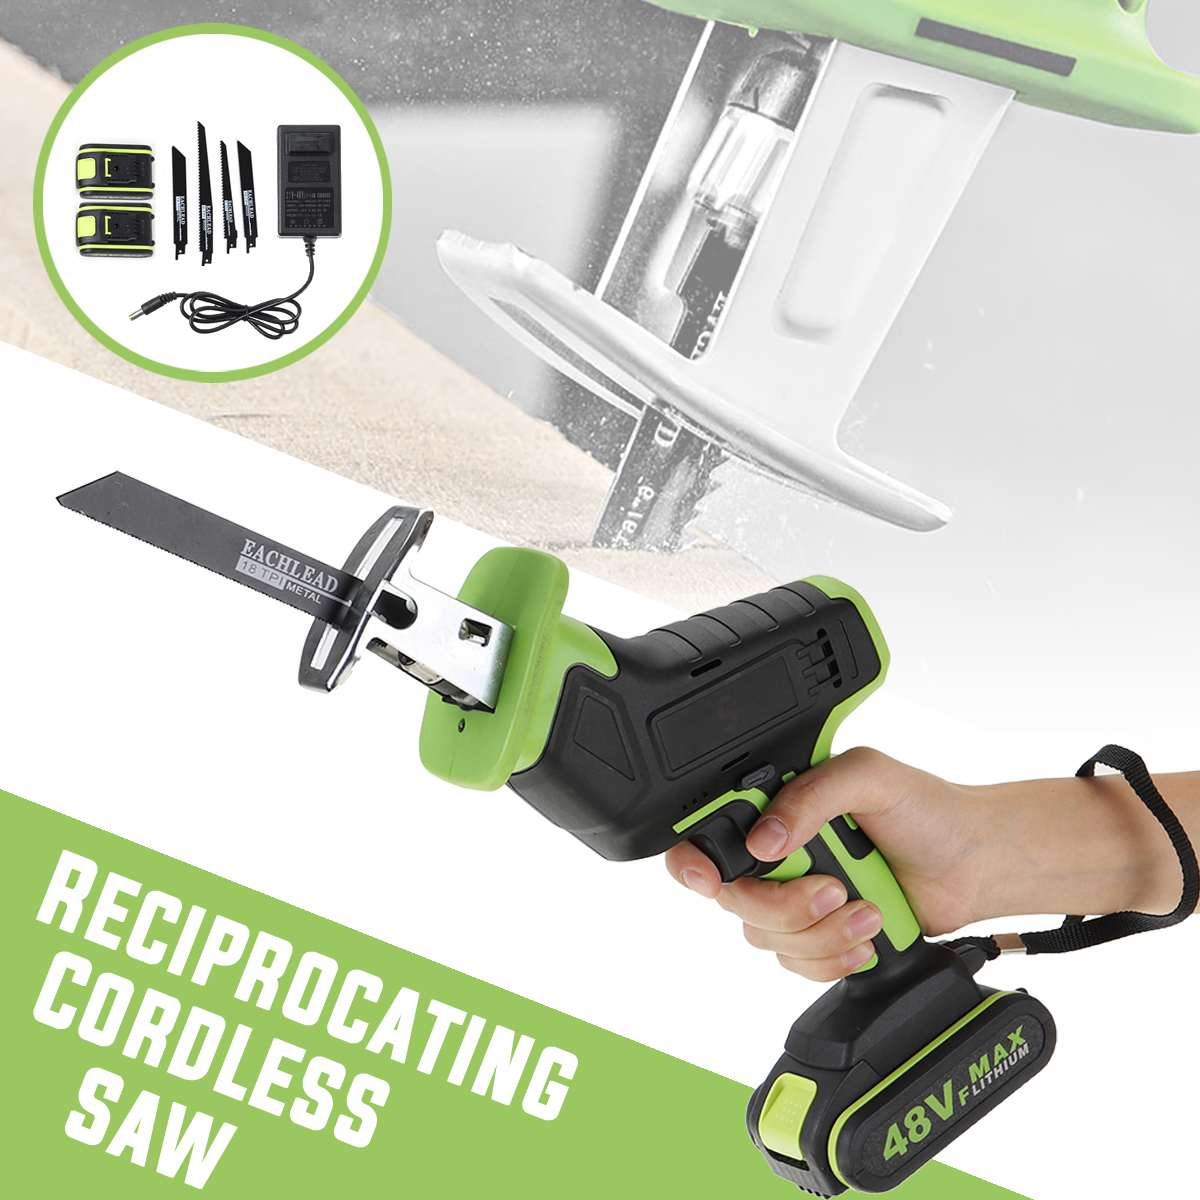 Doersupp 24V Cordless Reciprocating Saw +4 Saw Blades Metal Cutting Wood Tool Portable Woodworking Cutters With 1/2 Battery